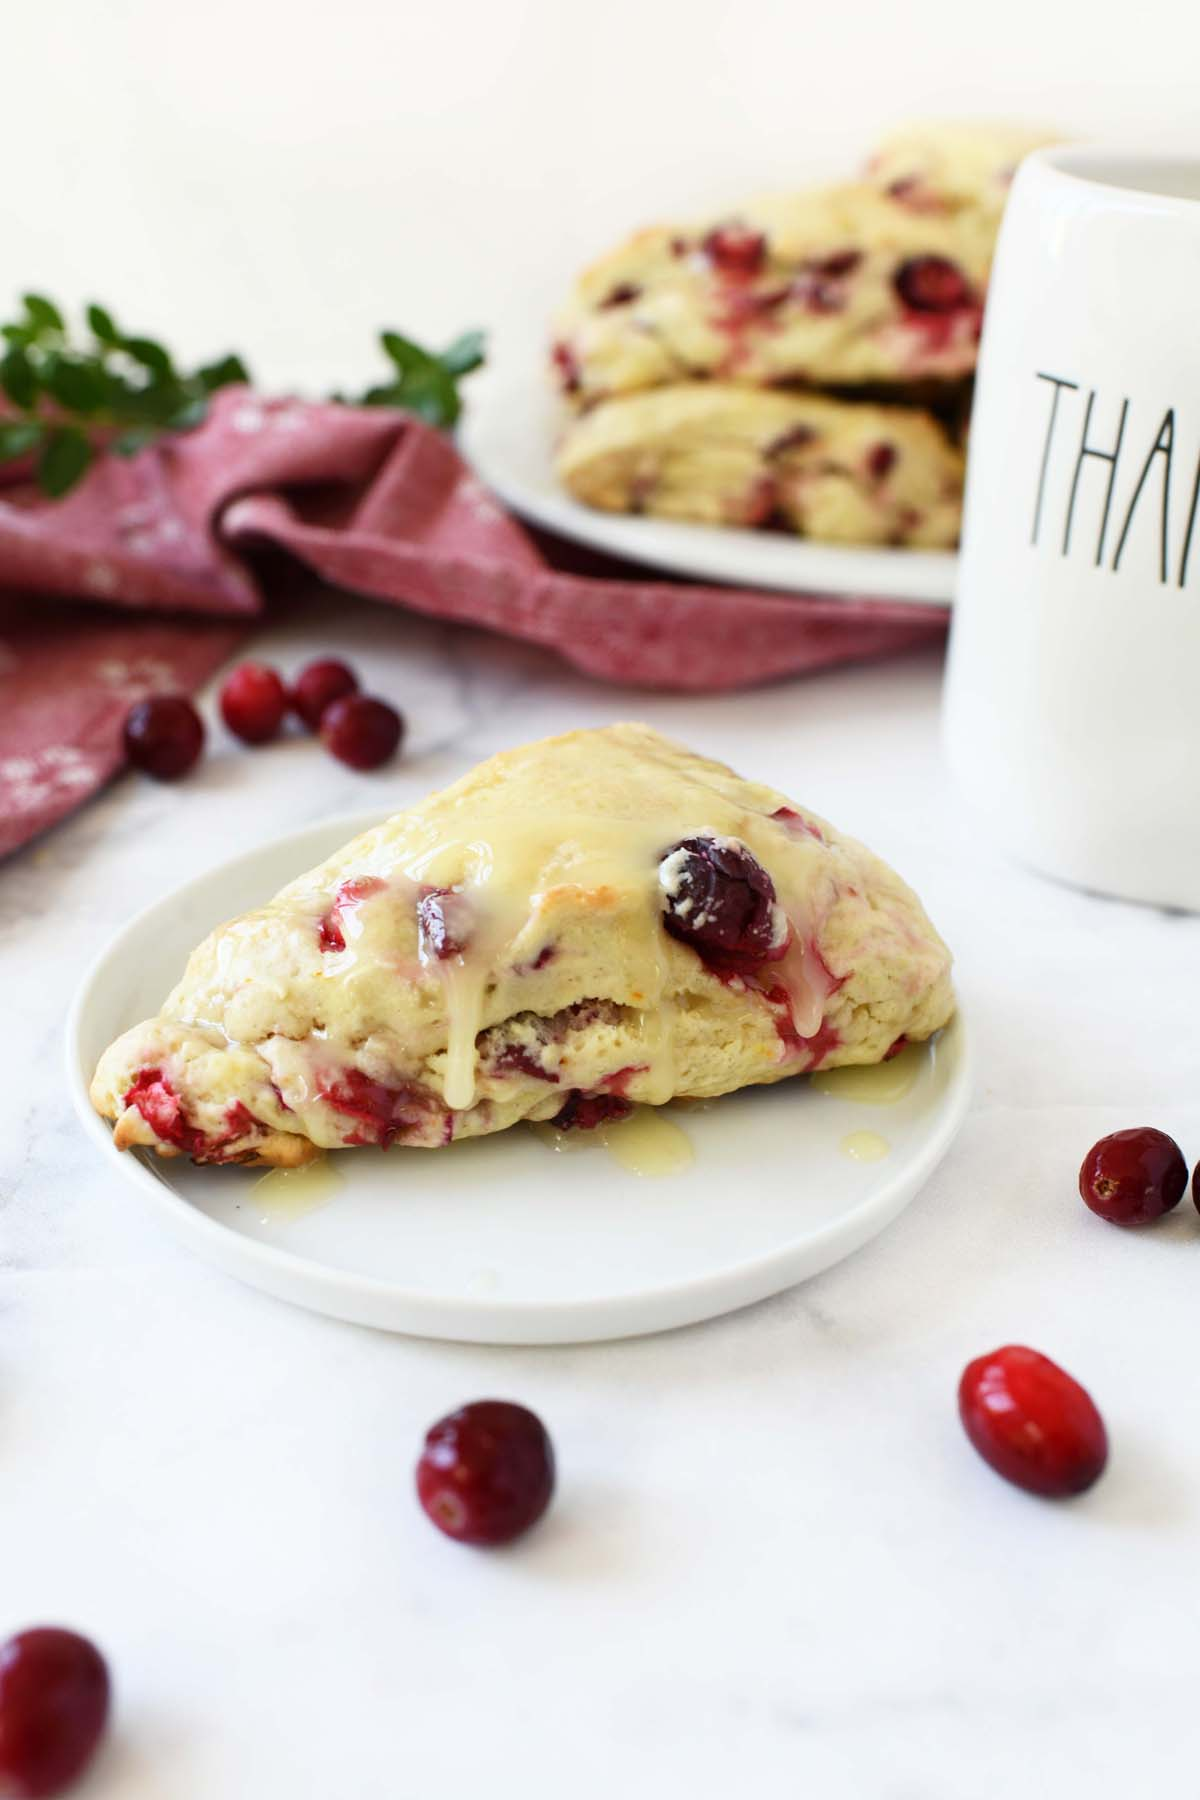 Cranberry Orange Scone on a plate with a thankful cup.